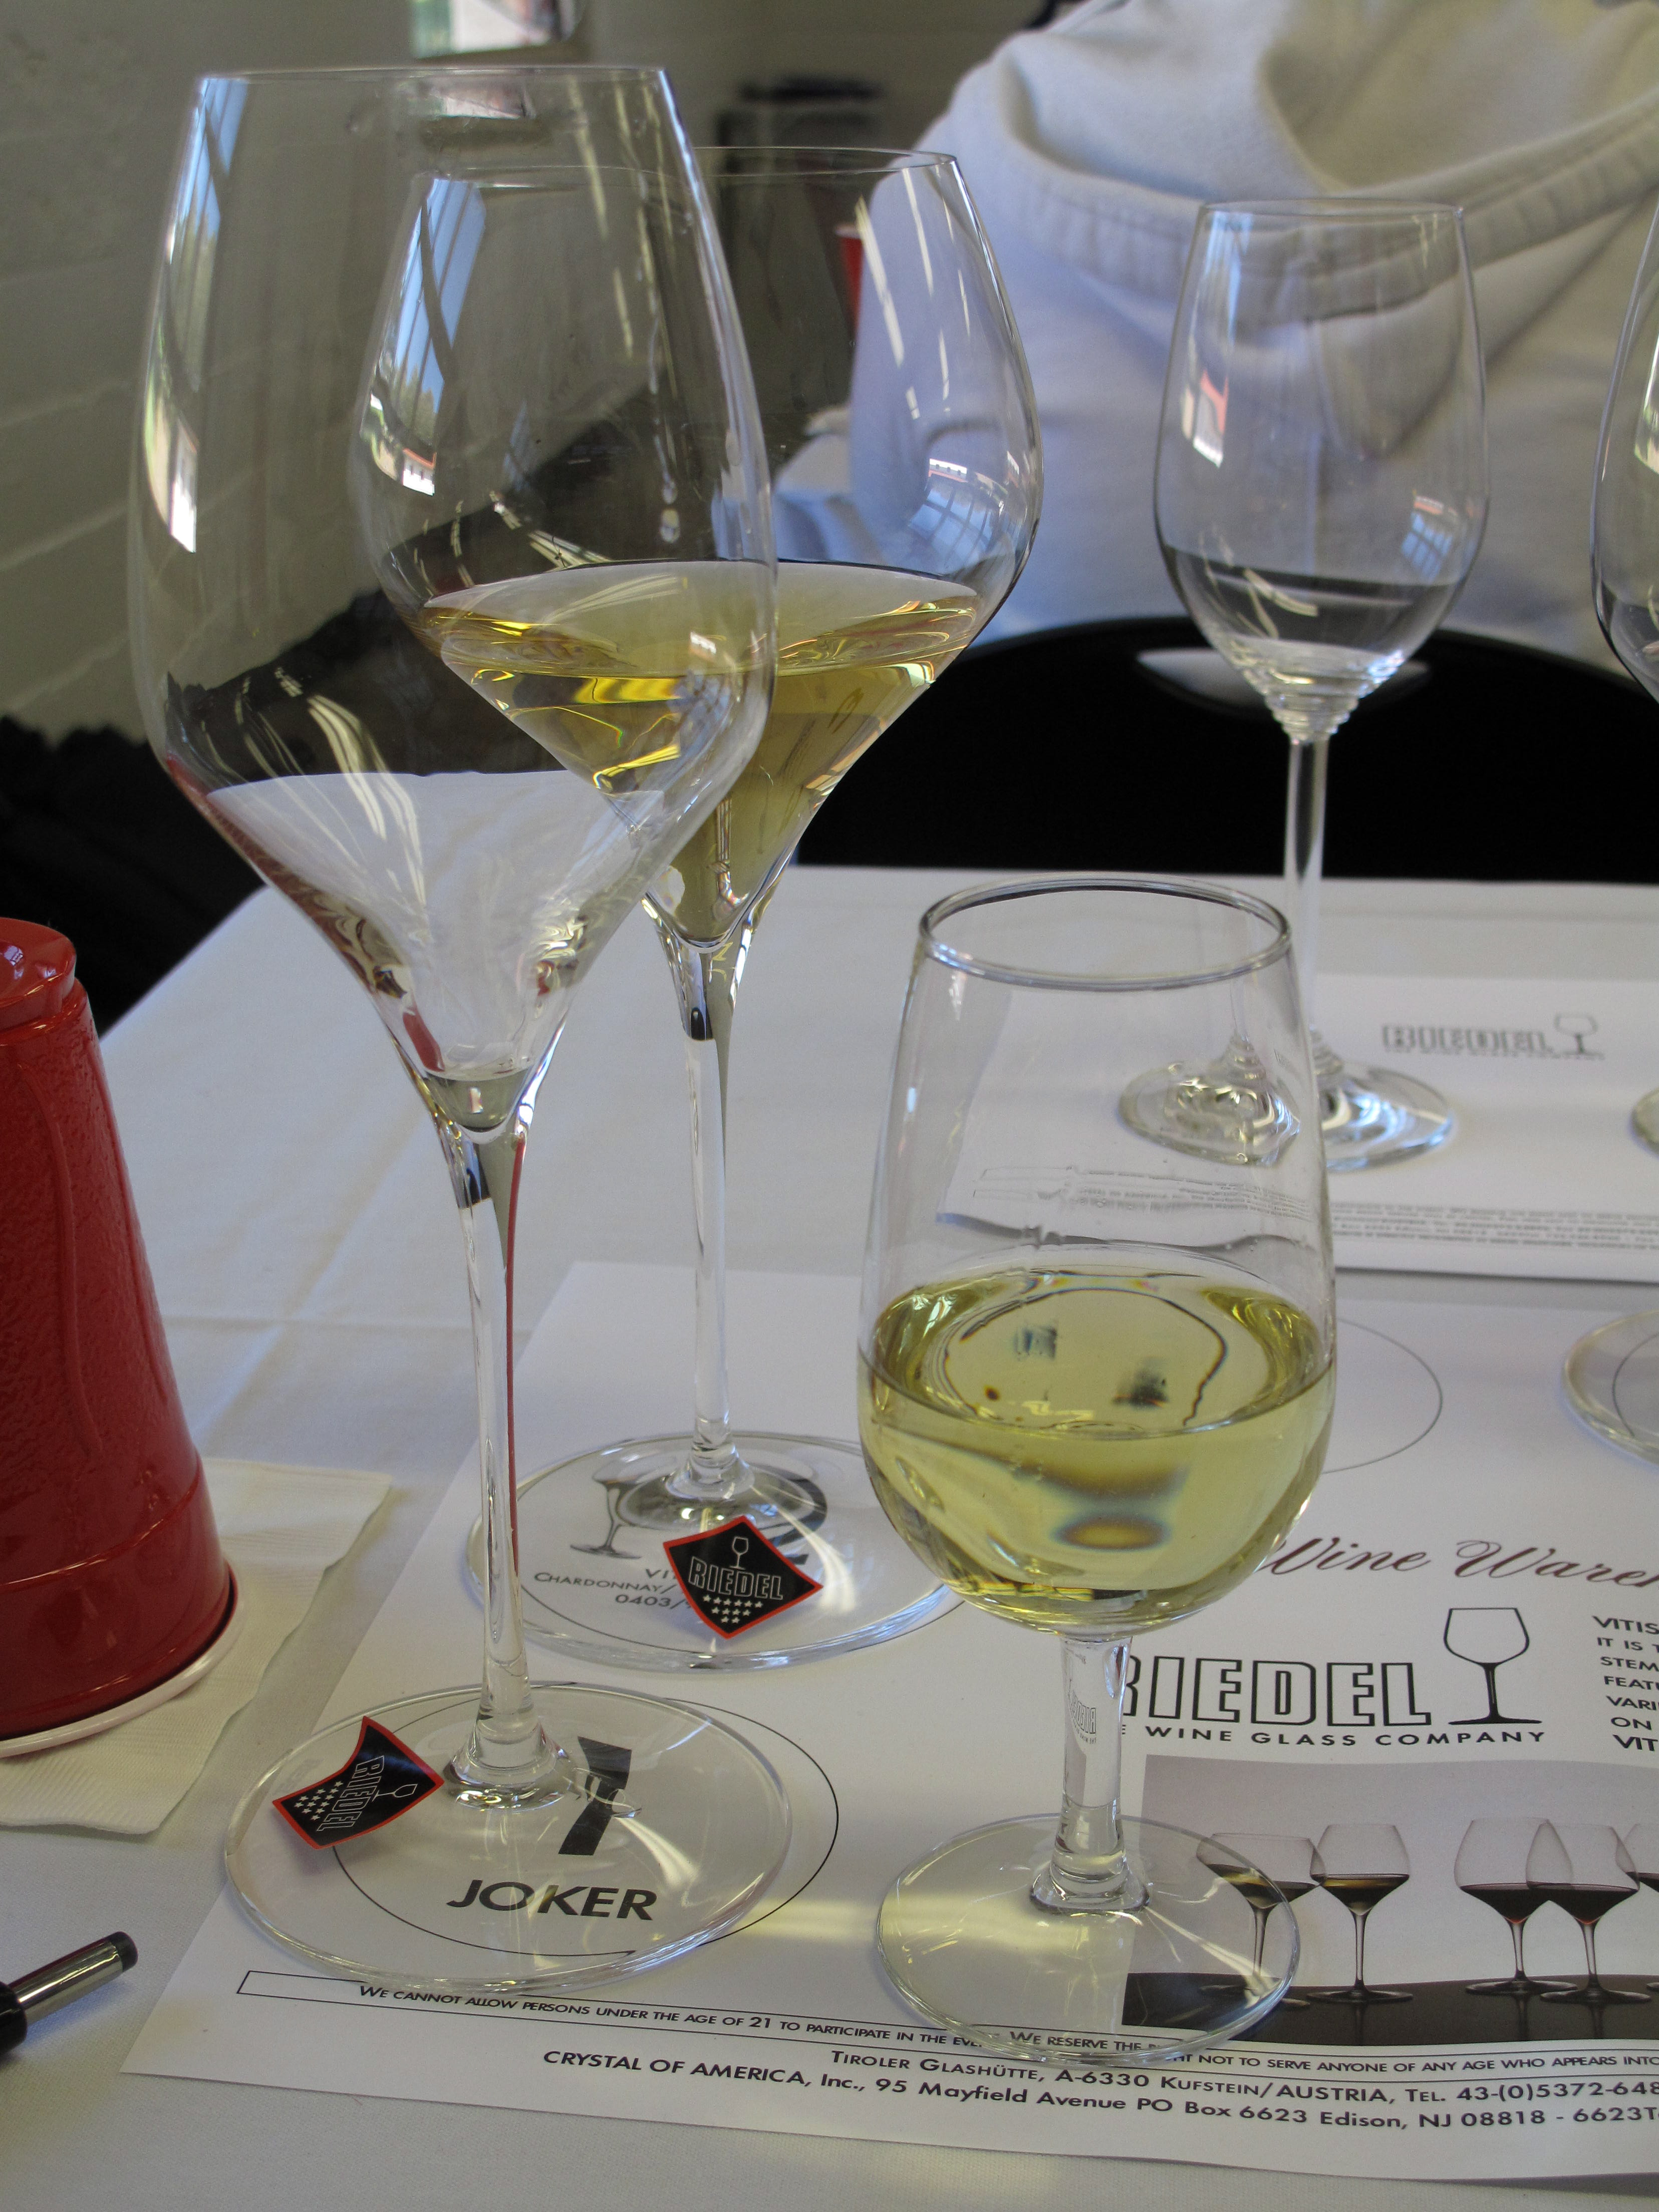 From left to right, the Vitis Riesling/Sauvignon Blanc glass, Vitis Montrachet glass, and a stout table glass. Without sufficient room for the wine to breathe in the table glass, the Riesling tasted metallic, subdued, and one-dimensional.